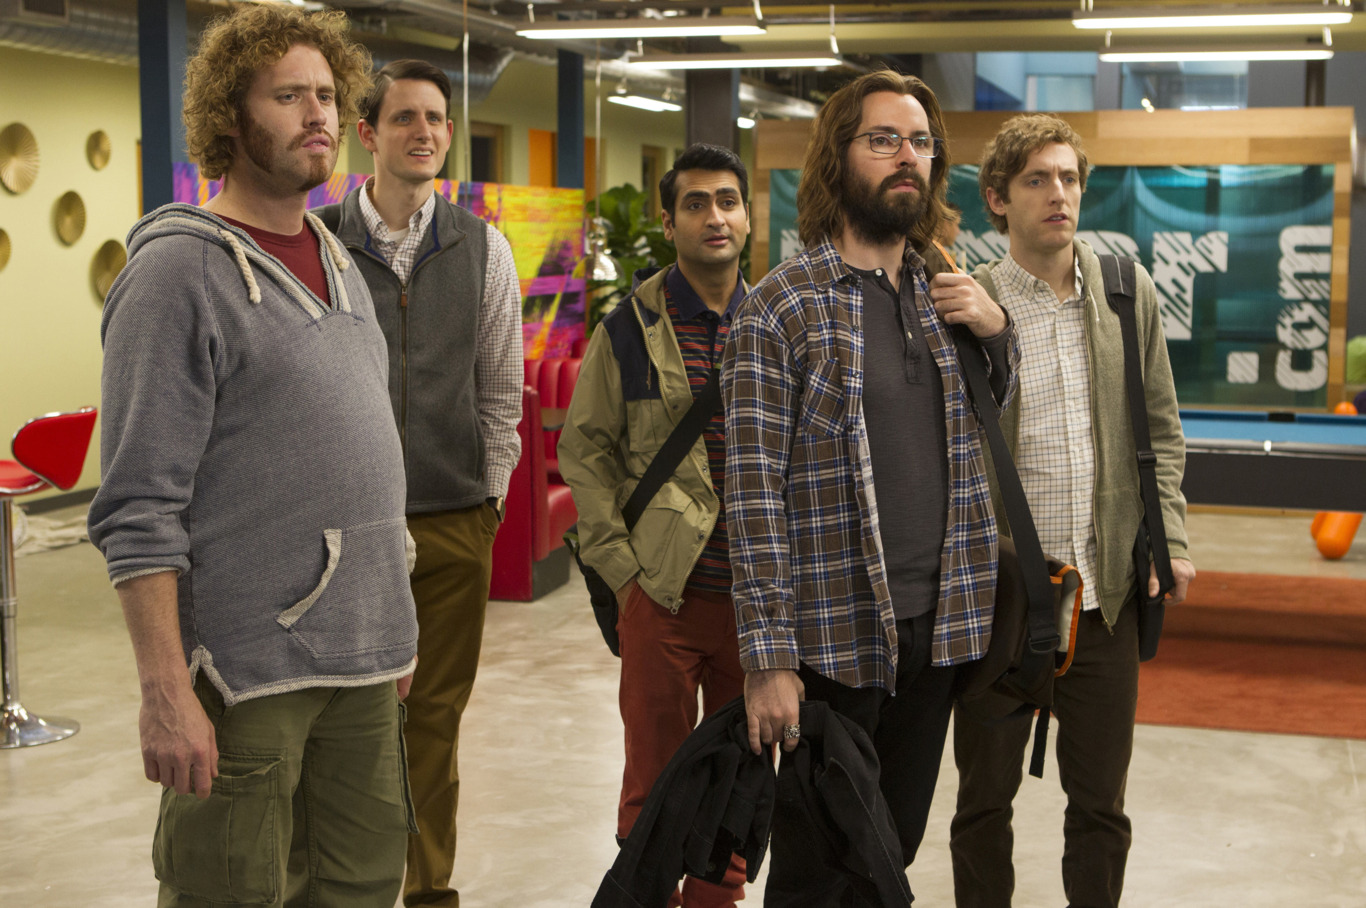 engineering staff of Silicon Valley's Pied Piper